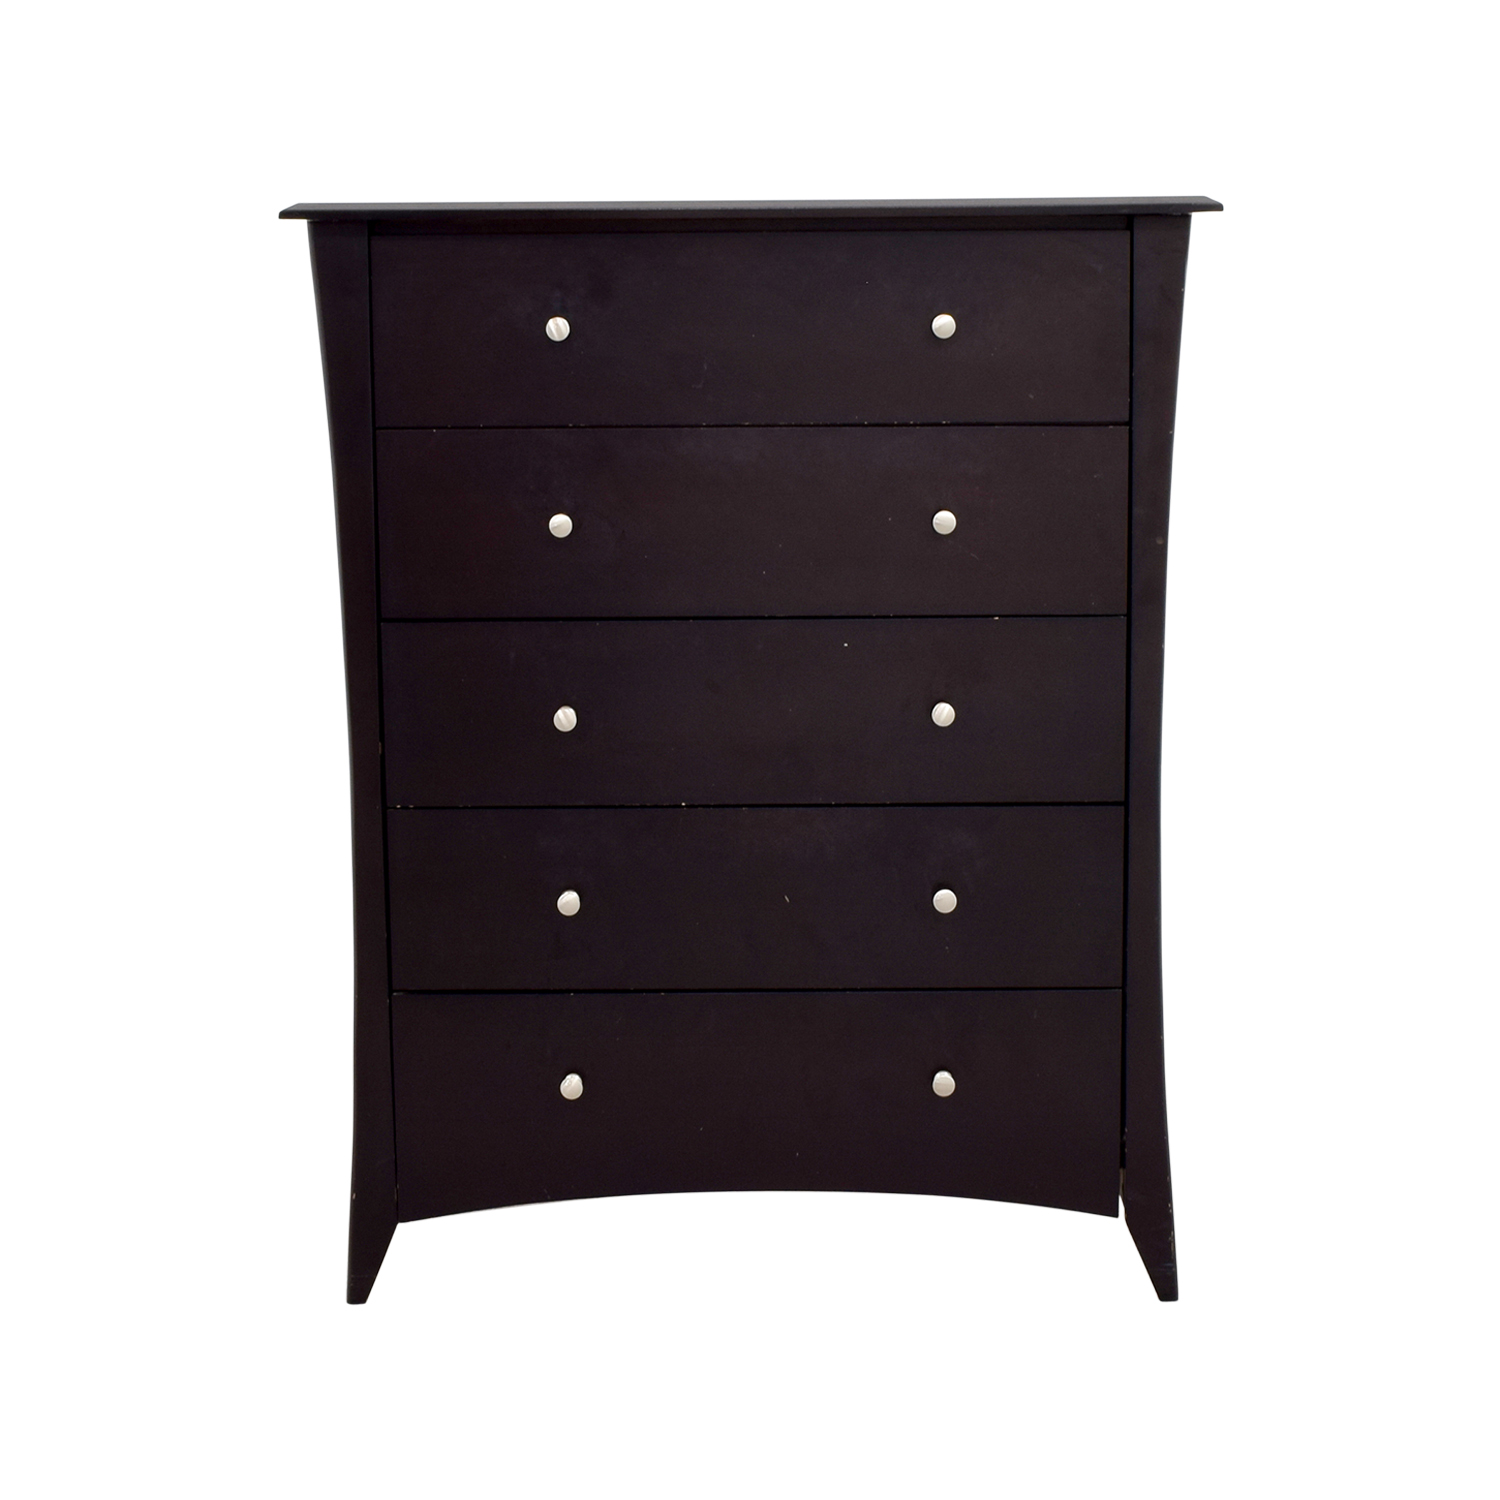 Dark Wood Five-Drawer Dresser / Dressers